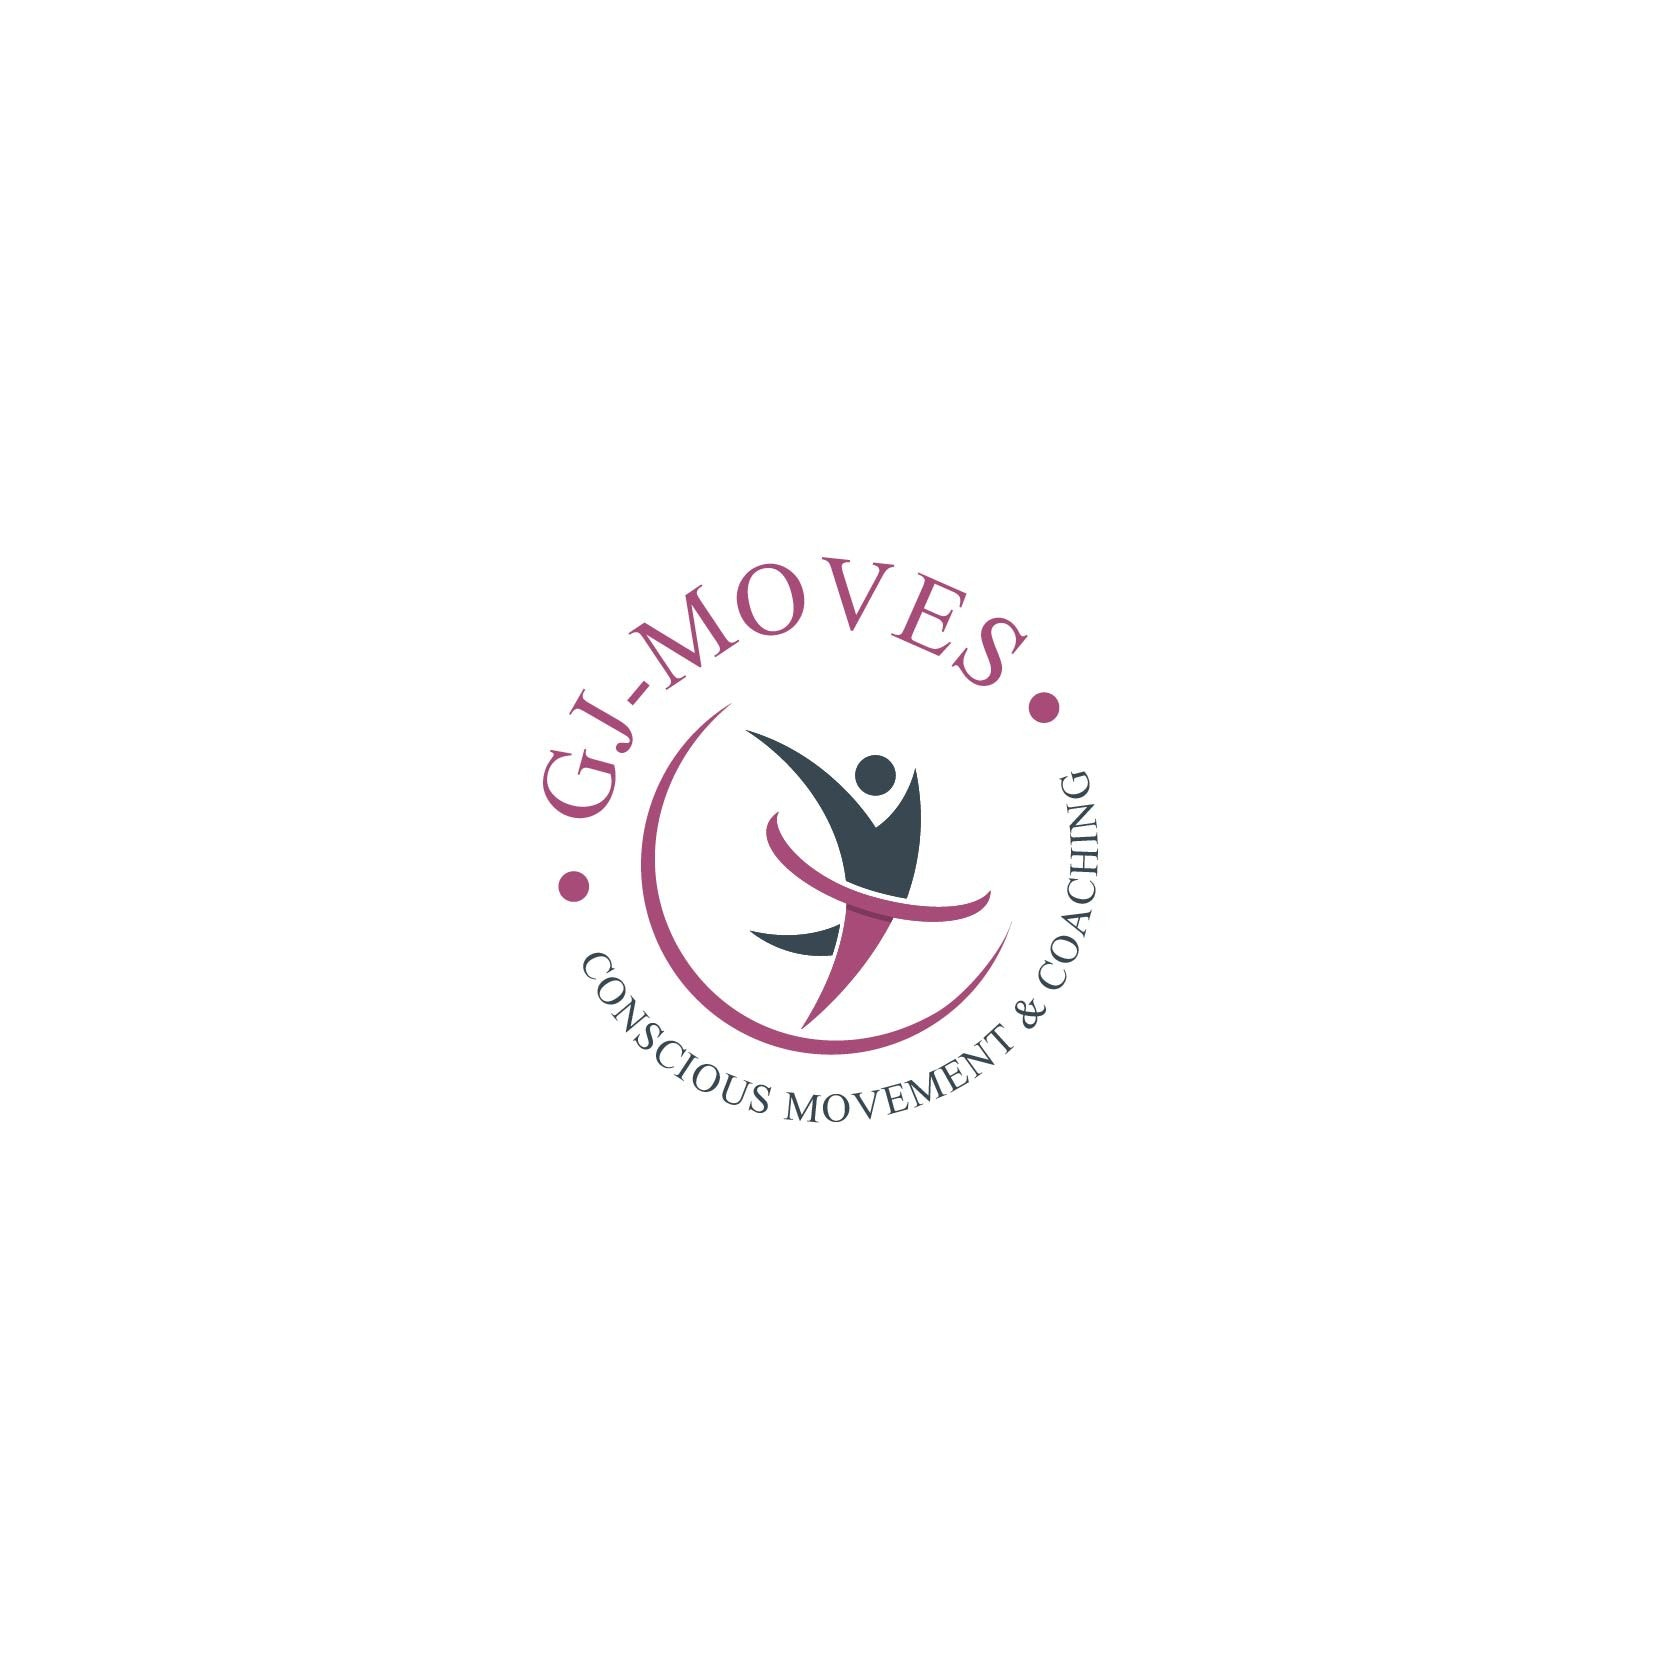 GJ-Moves logo